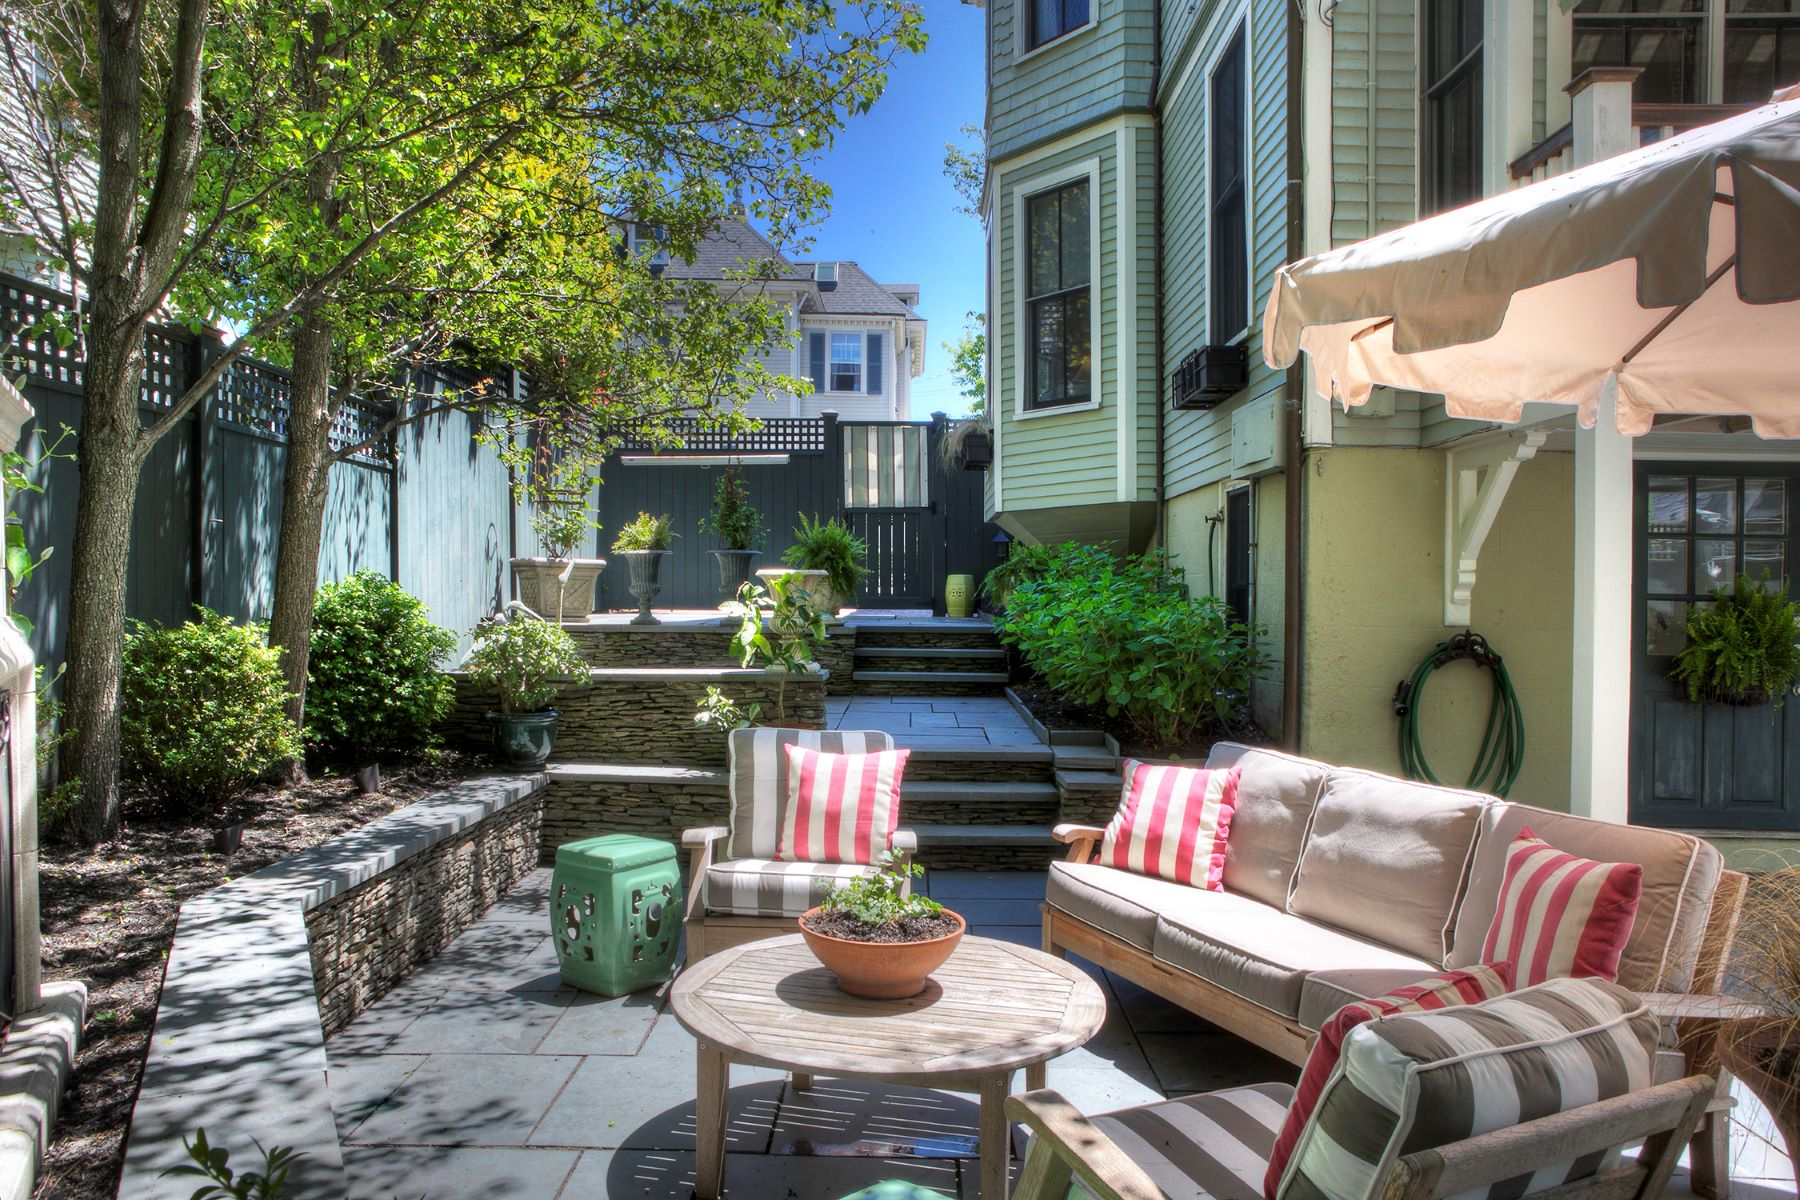 Additional photo for property listing at Benjamin F. Downing House 39 School Street Newport, Rhode Island 02840 United States